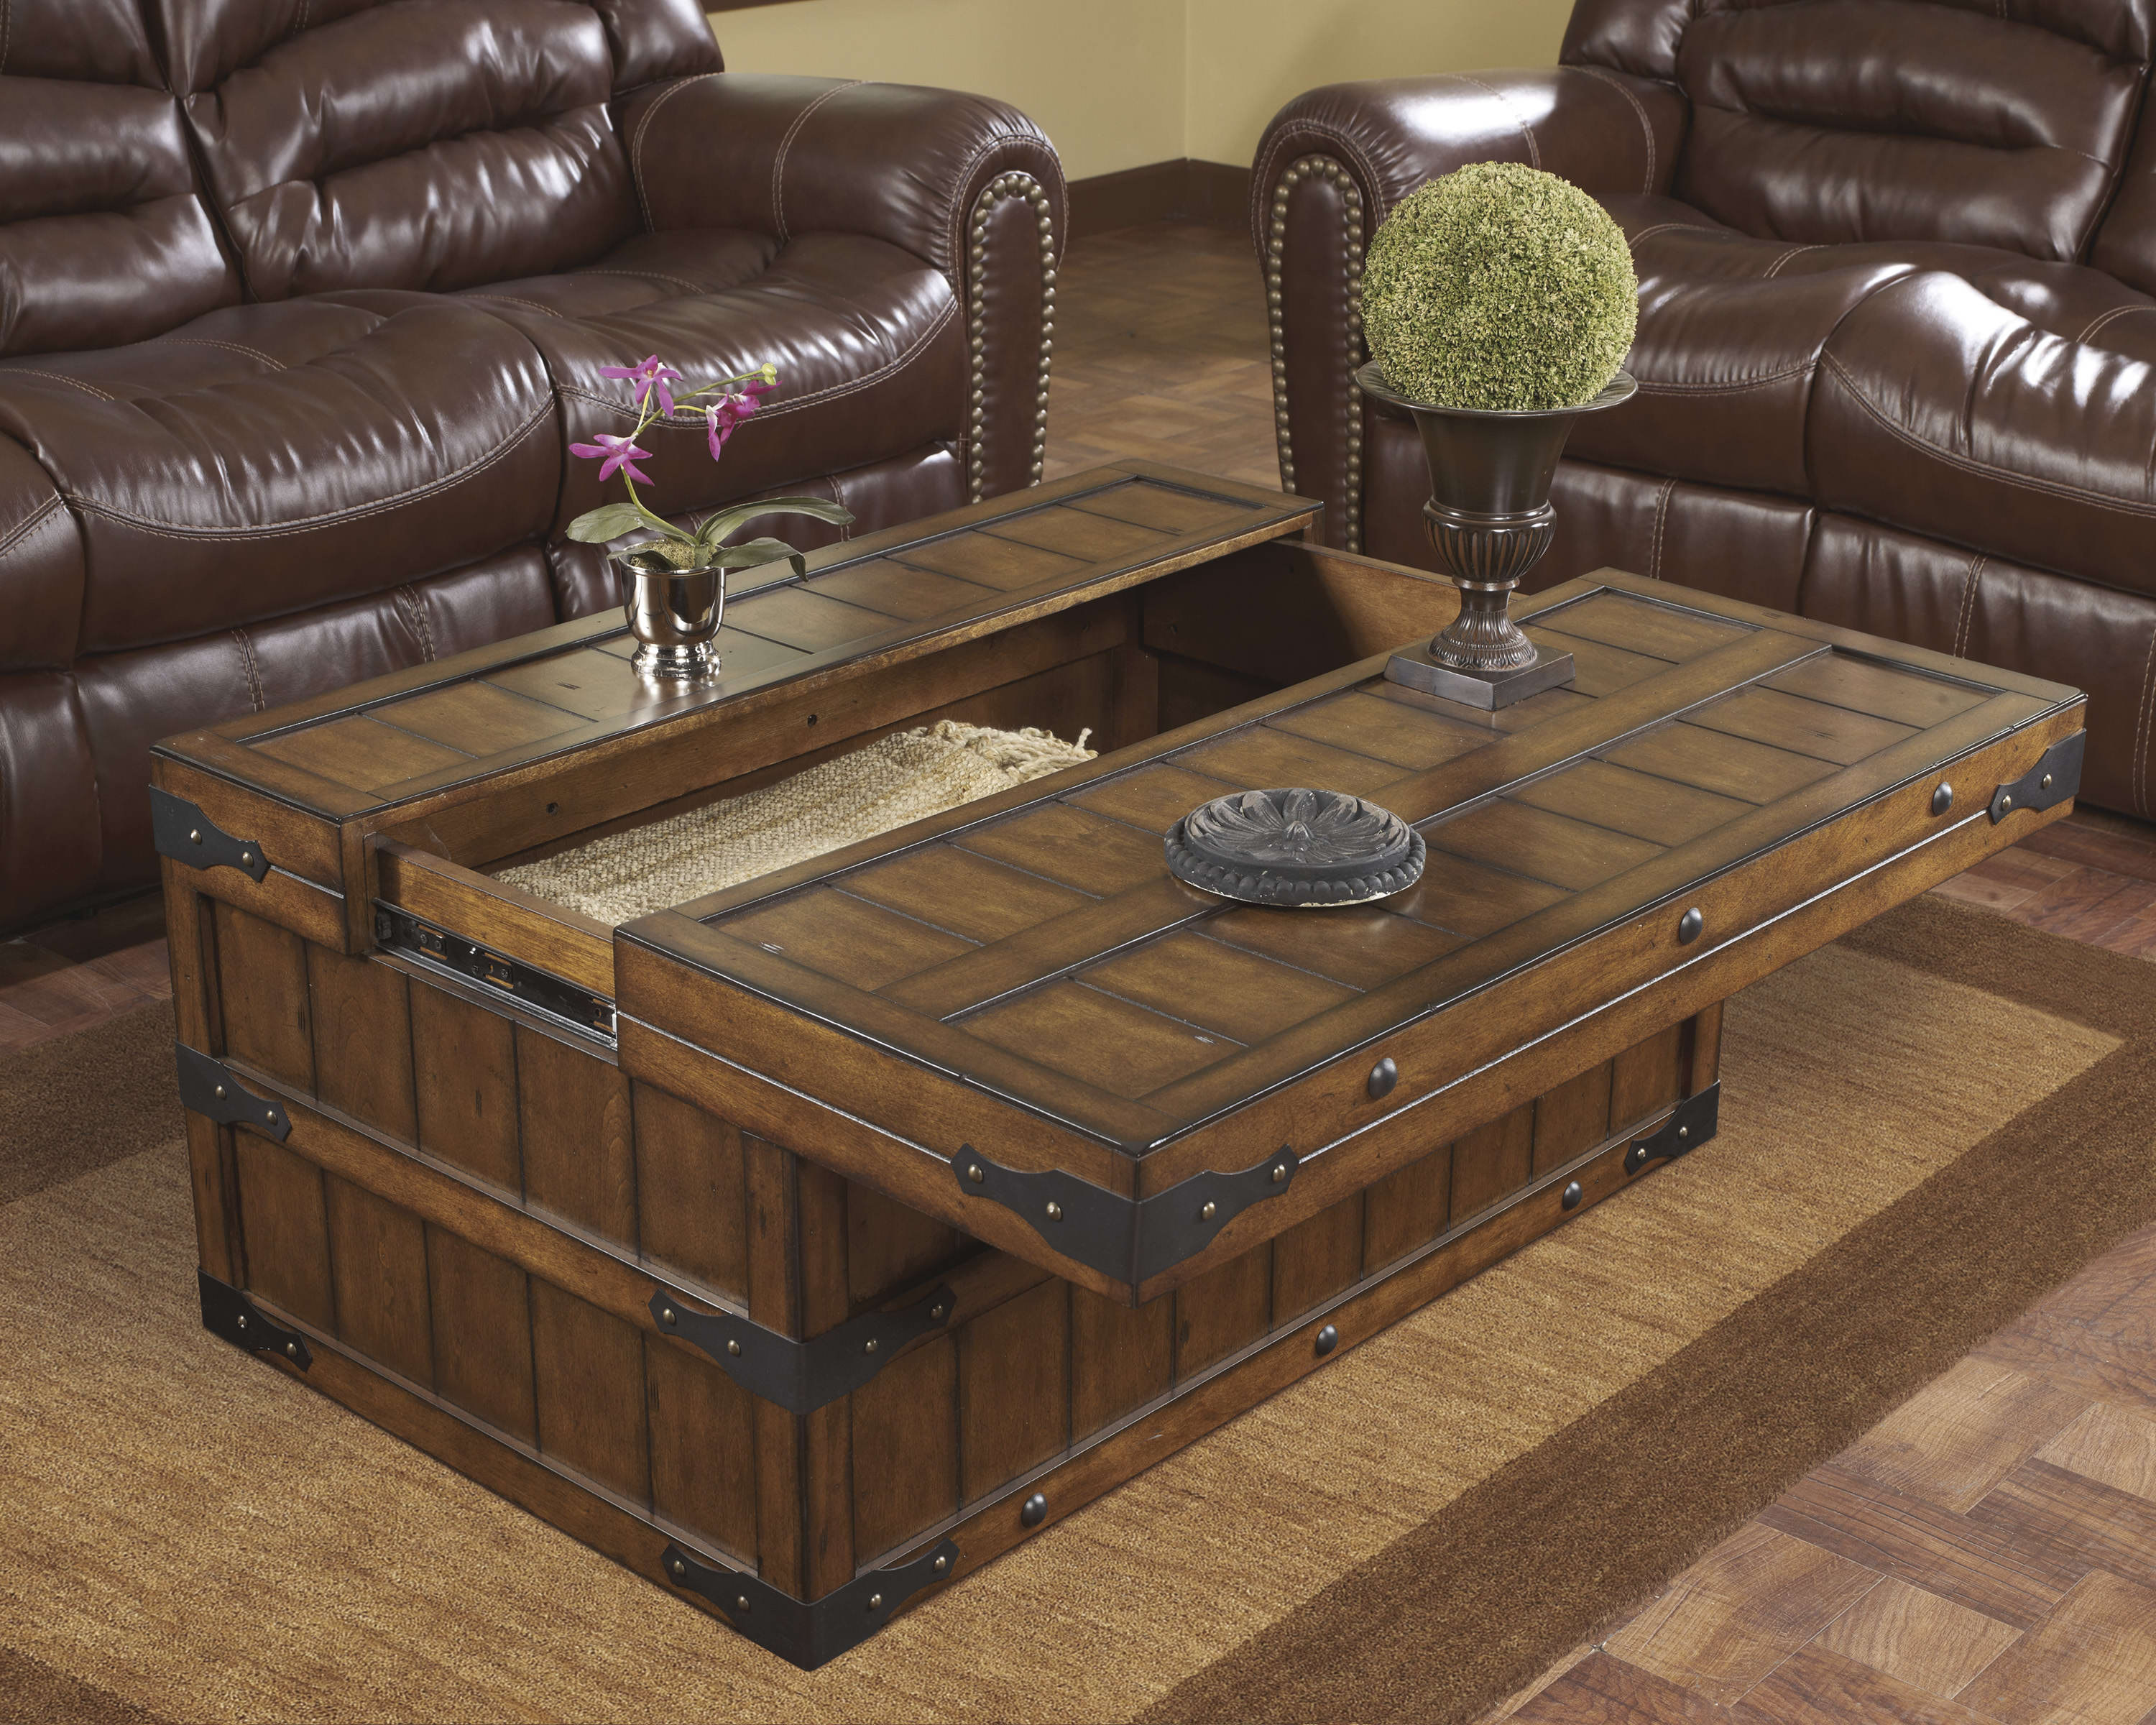 Dark Wood Trunk Coffee Table with Storages